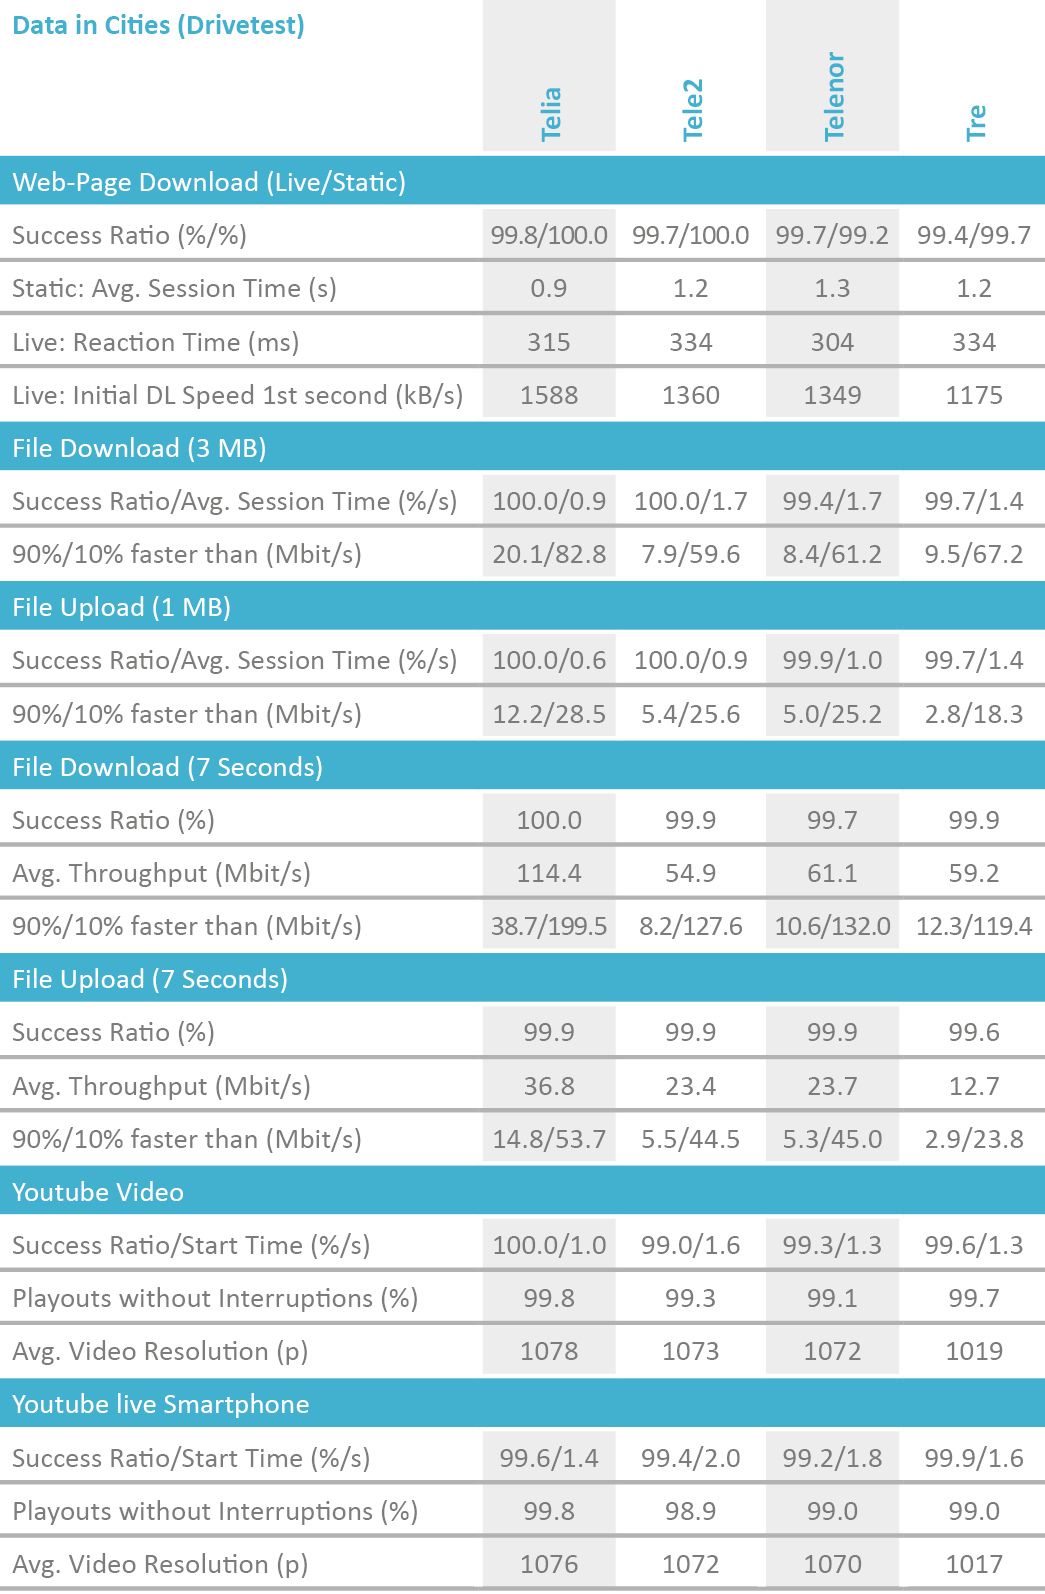 SE2019_table_DataCities_Drivetest.png